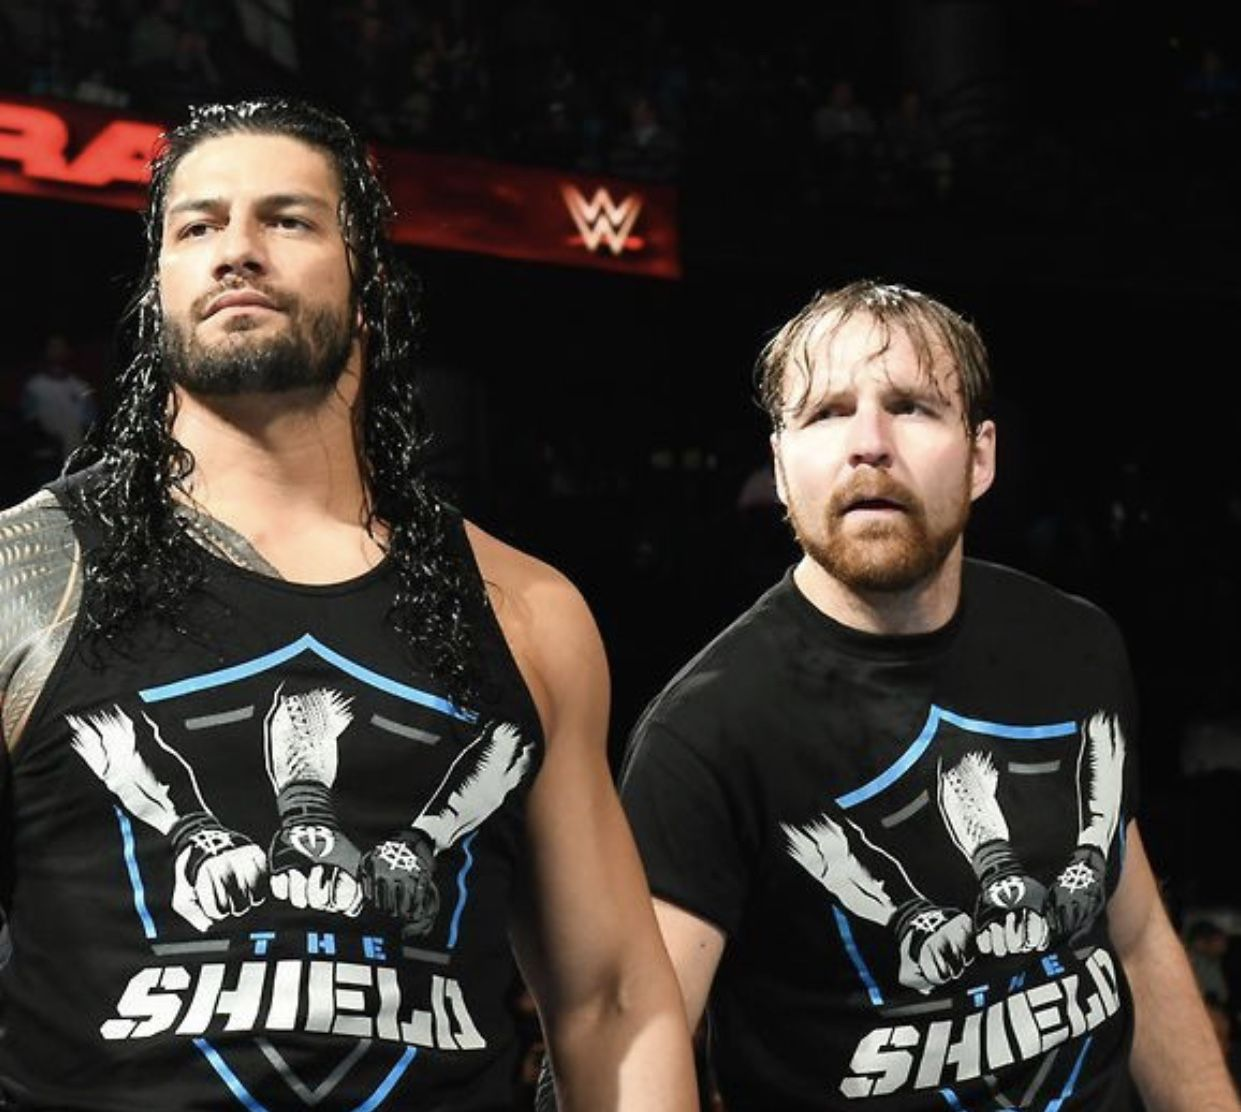 Brothers of Arms Roman Reigns And Dean Ambrose Are The Best